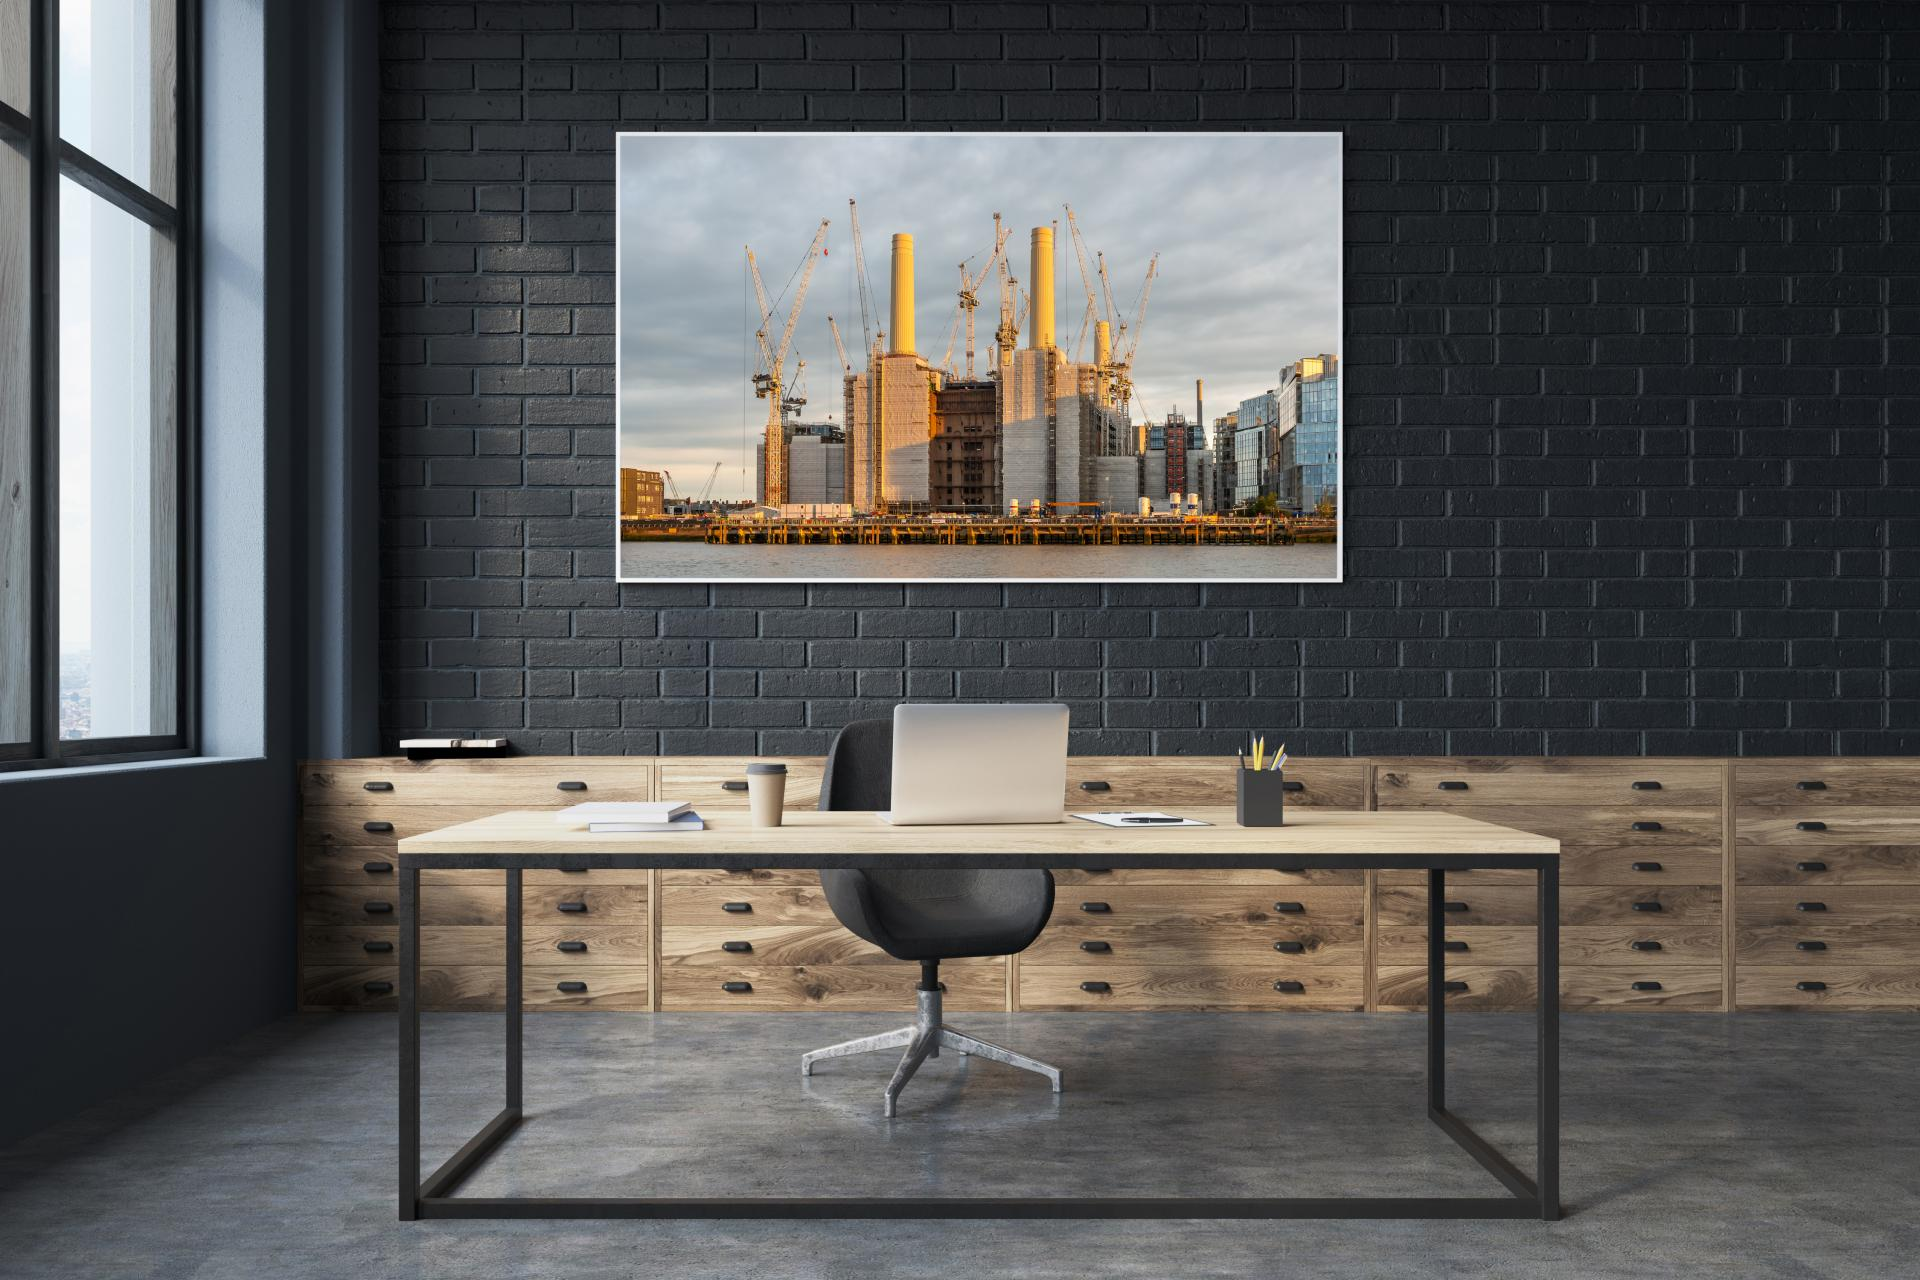 Battersea Power Station taken from bank opposite at sunset, Liane Ryan Interior/Architectural Photography